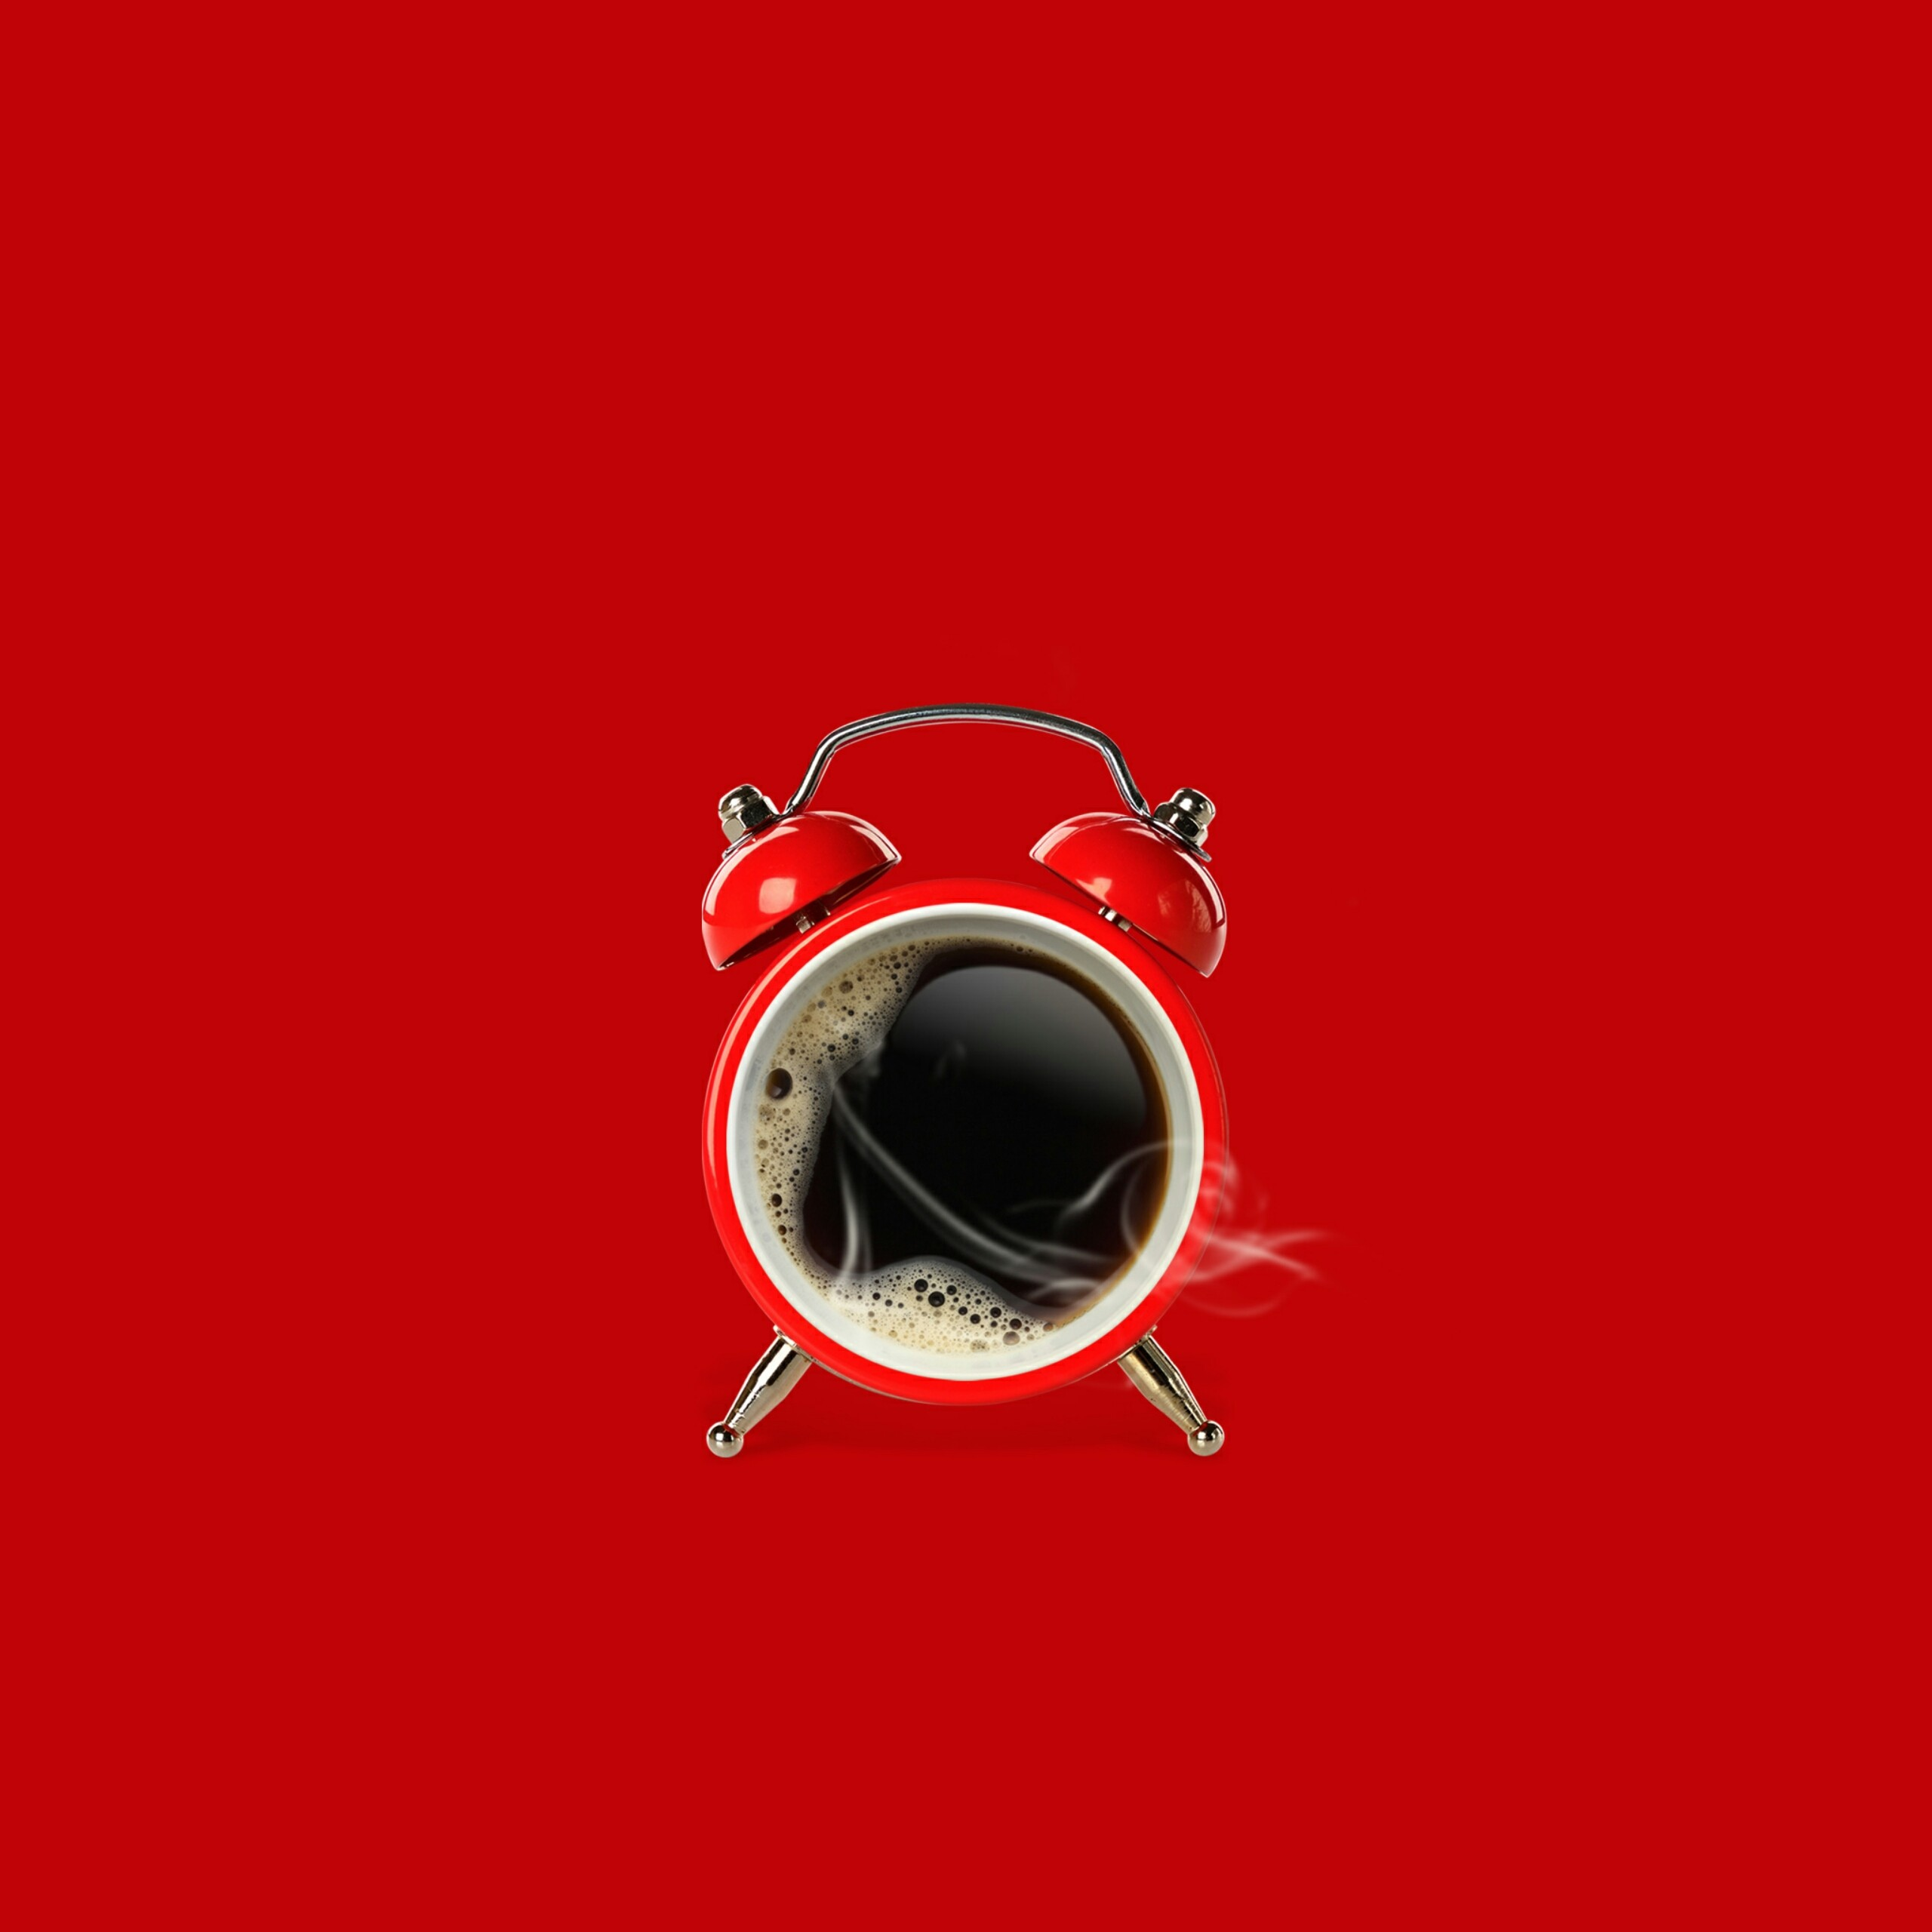 Red Coffee Cup Cool Wall Hd Wallpapers Backgrounds Desktop Iphone Android Free